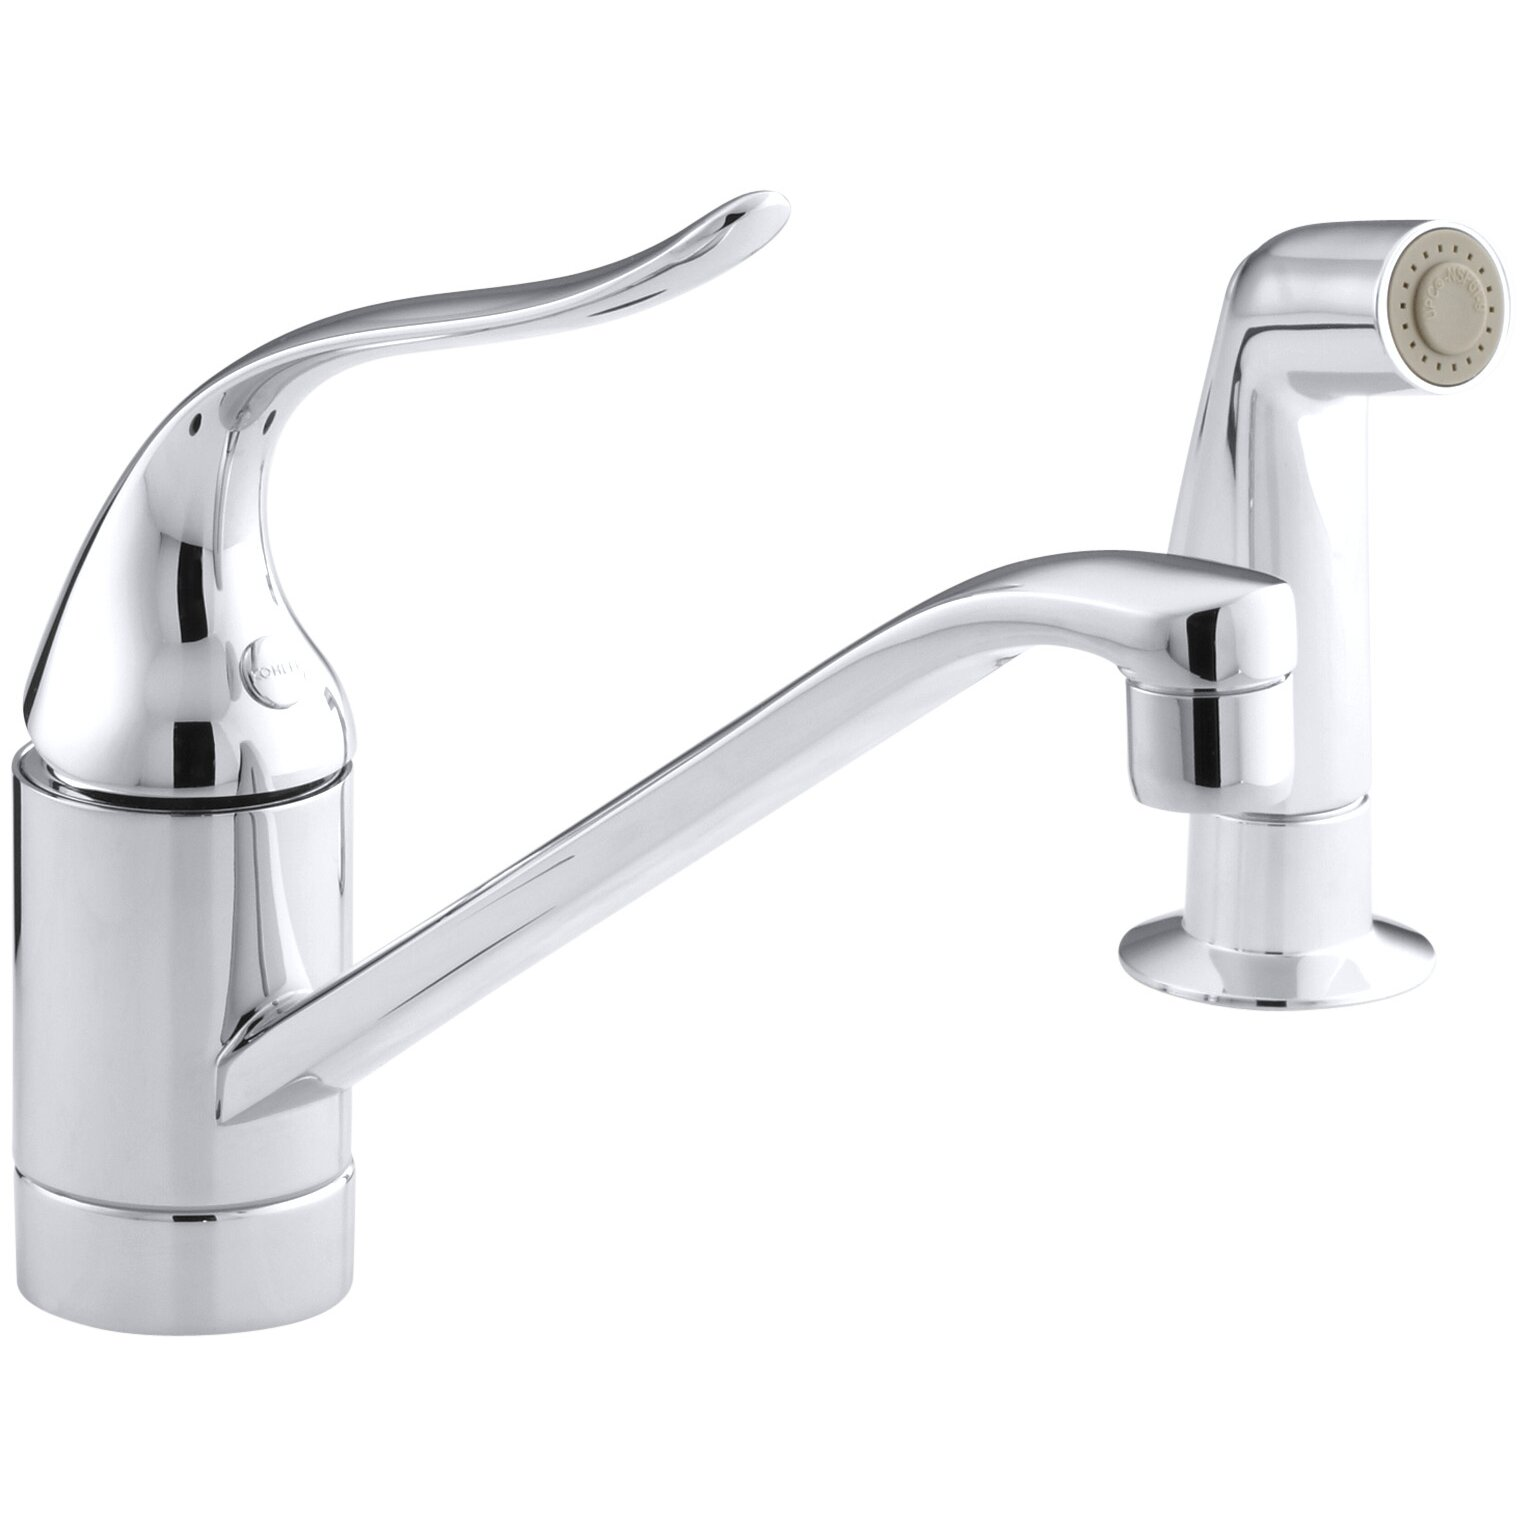 Kohler coralais two hole kitchen sink faucet with 8 1 2 spout matching finish side spray for Kohler coralais bathroom faucet